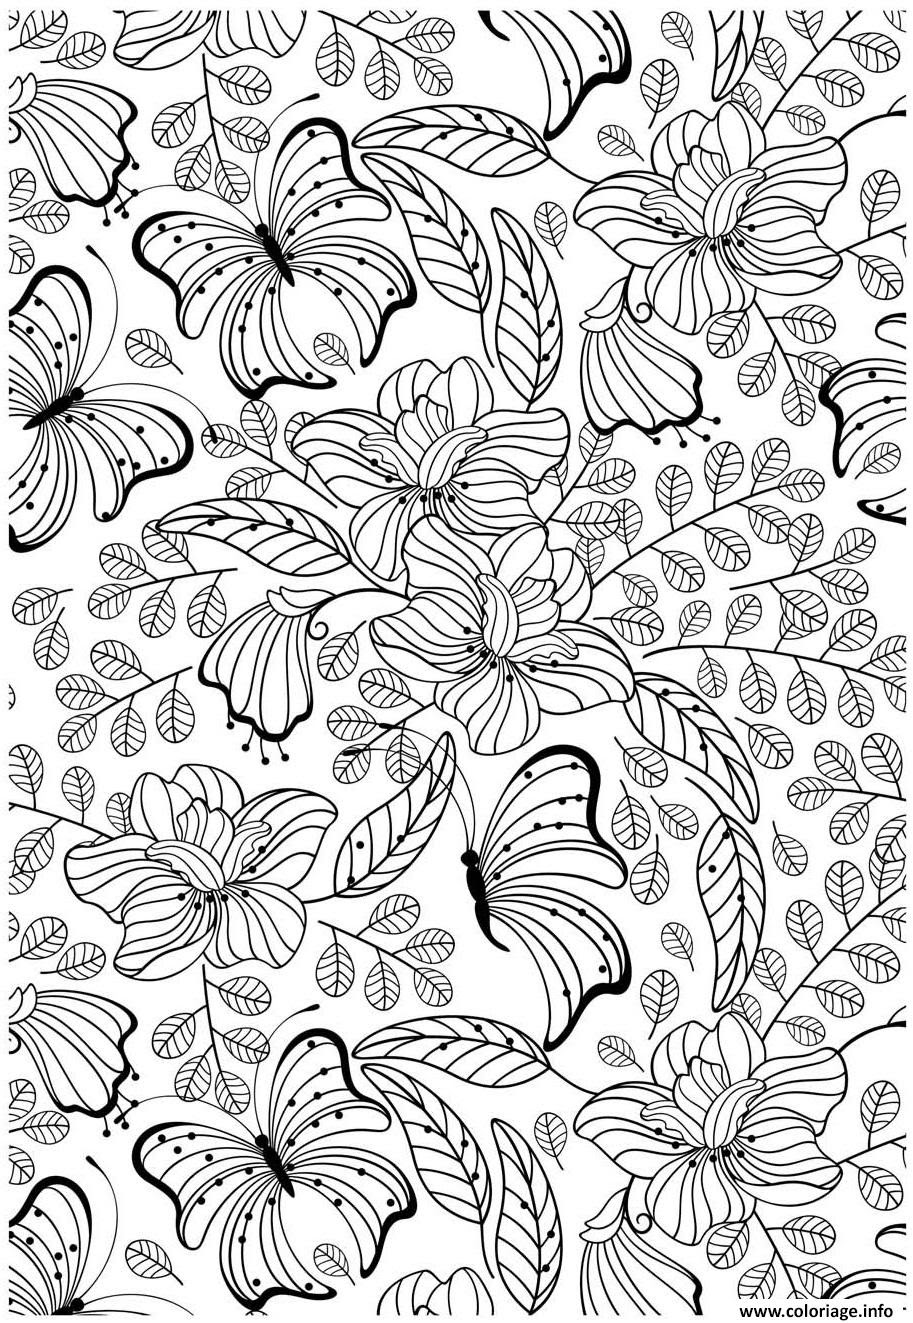 Coloriage Adulte Anti Stress Hachette Jecoloriecom